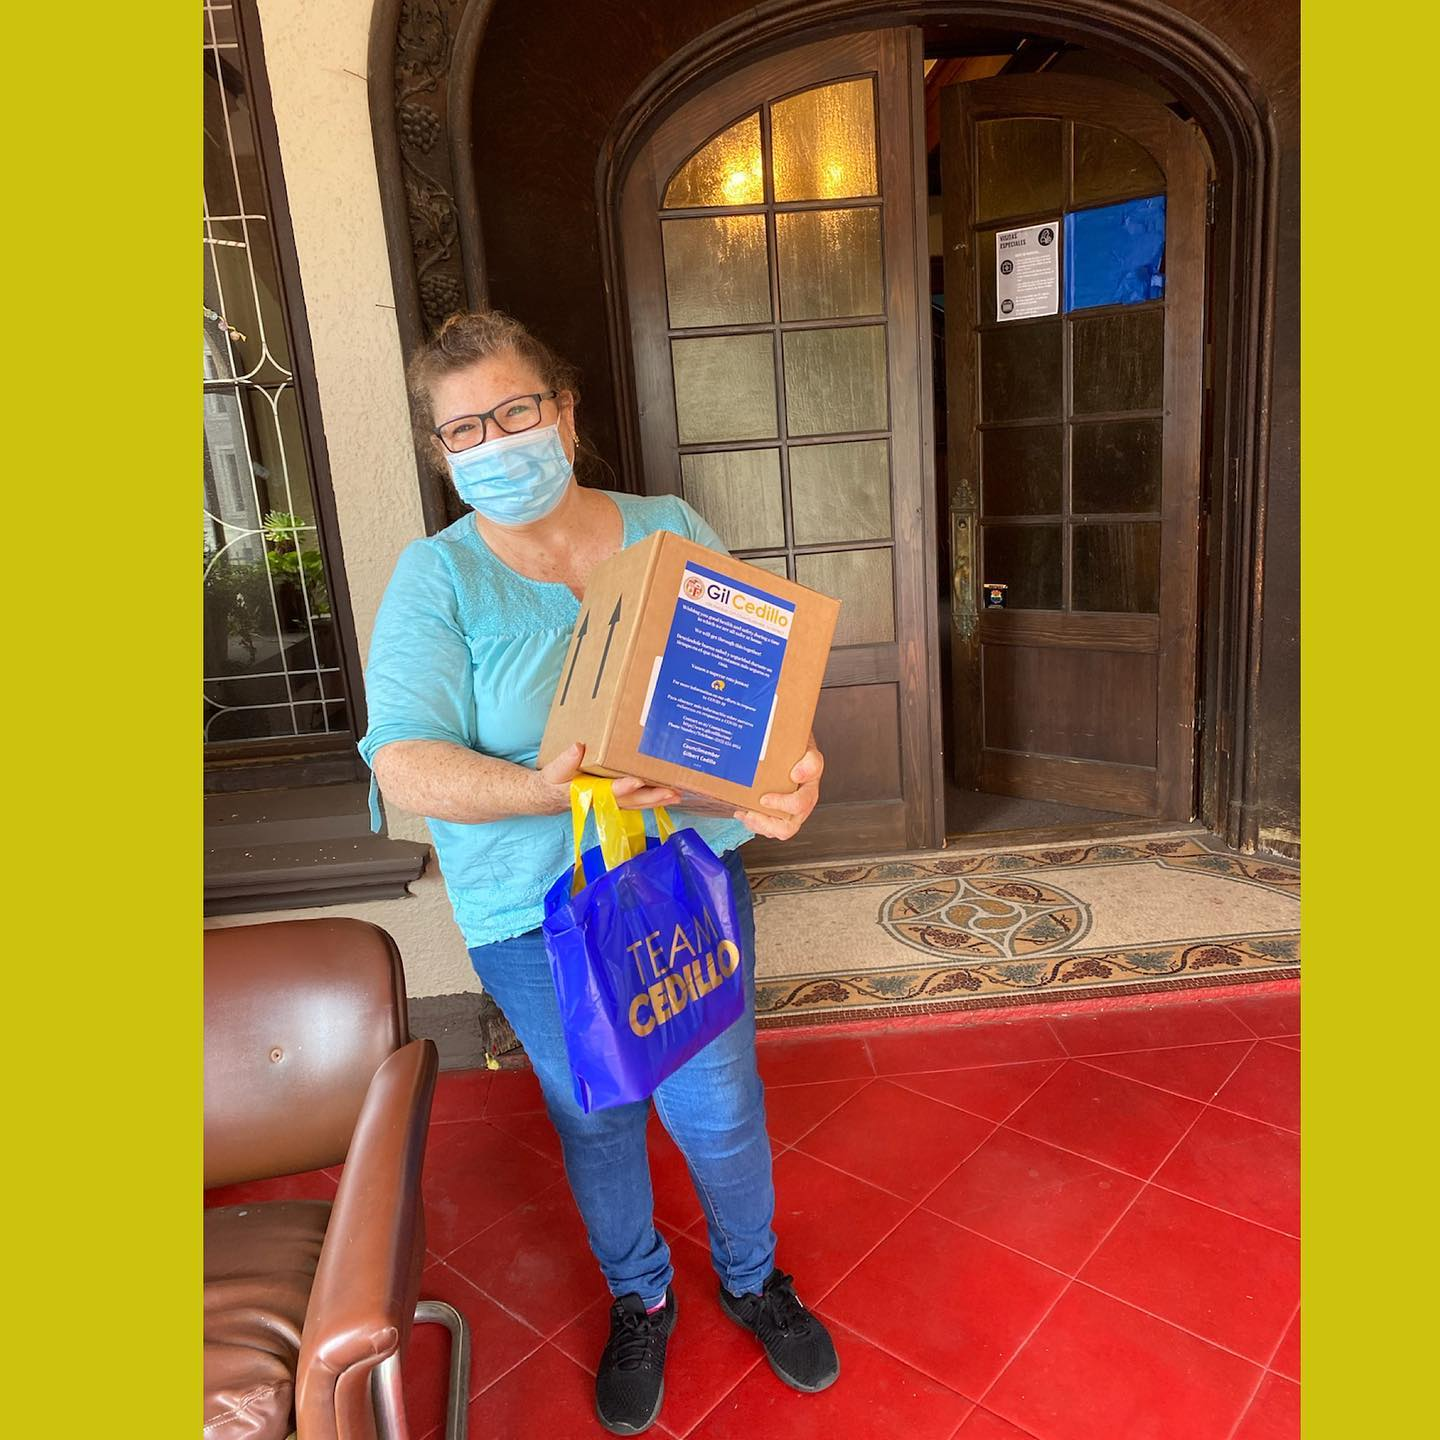 Team Cedillo distributed hand sanitizer and masks to residents at Casa Libre in Westlake 8-13-2020 #1